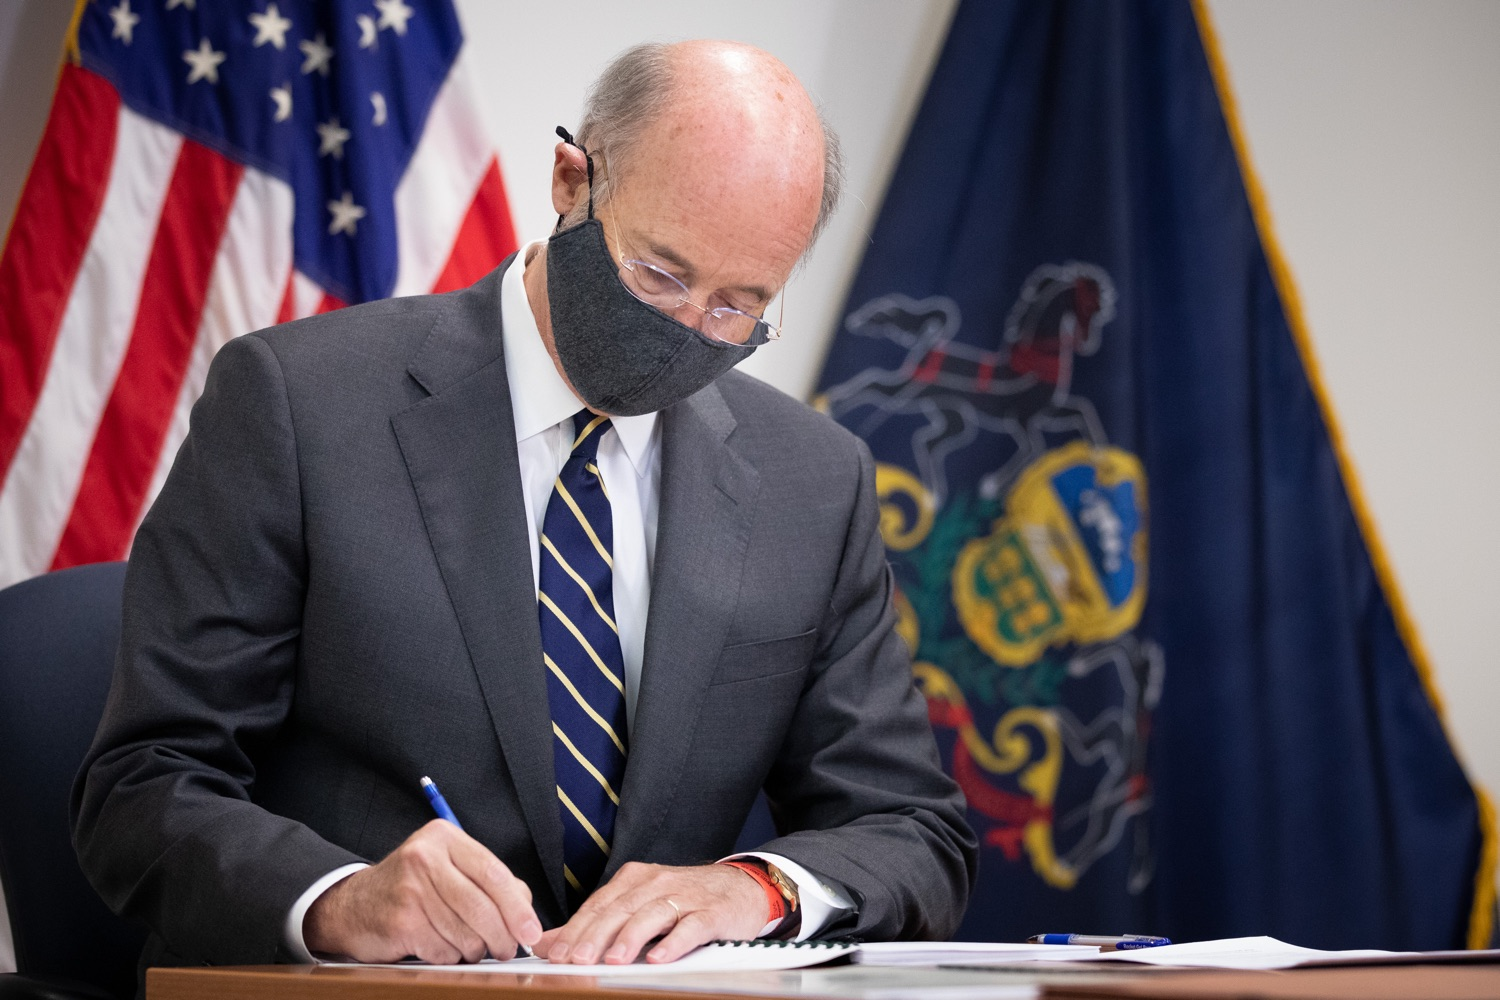 "<a href=""https://filesource.wostreaming.net/commonwealthofpa/photo/18141_gov_sb637_bill_signing_dz_01.jpg"" target=""_blank"">⇣ Download Photo<br></a>Pennsylvania Governor Tom Wolf signs a bill.  Building on his criminal justice reforms and fulfilling a recommendation to modernize job licensing, Governor Tom Wolf today signed Senate Bill 637, which removes outdated licensing barriers so skilled workers with criminal records can get a second chance and start good careers. The governor has advocated for sweeping changes to the licensing process for years. Harrisburg, PA  July 1, 2020"